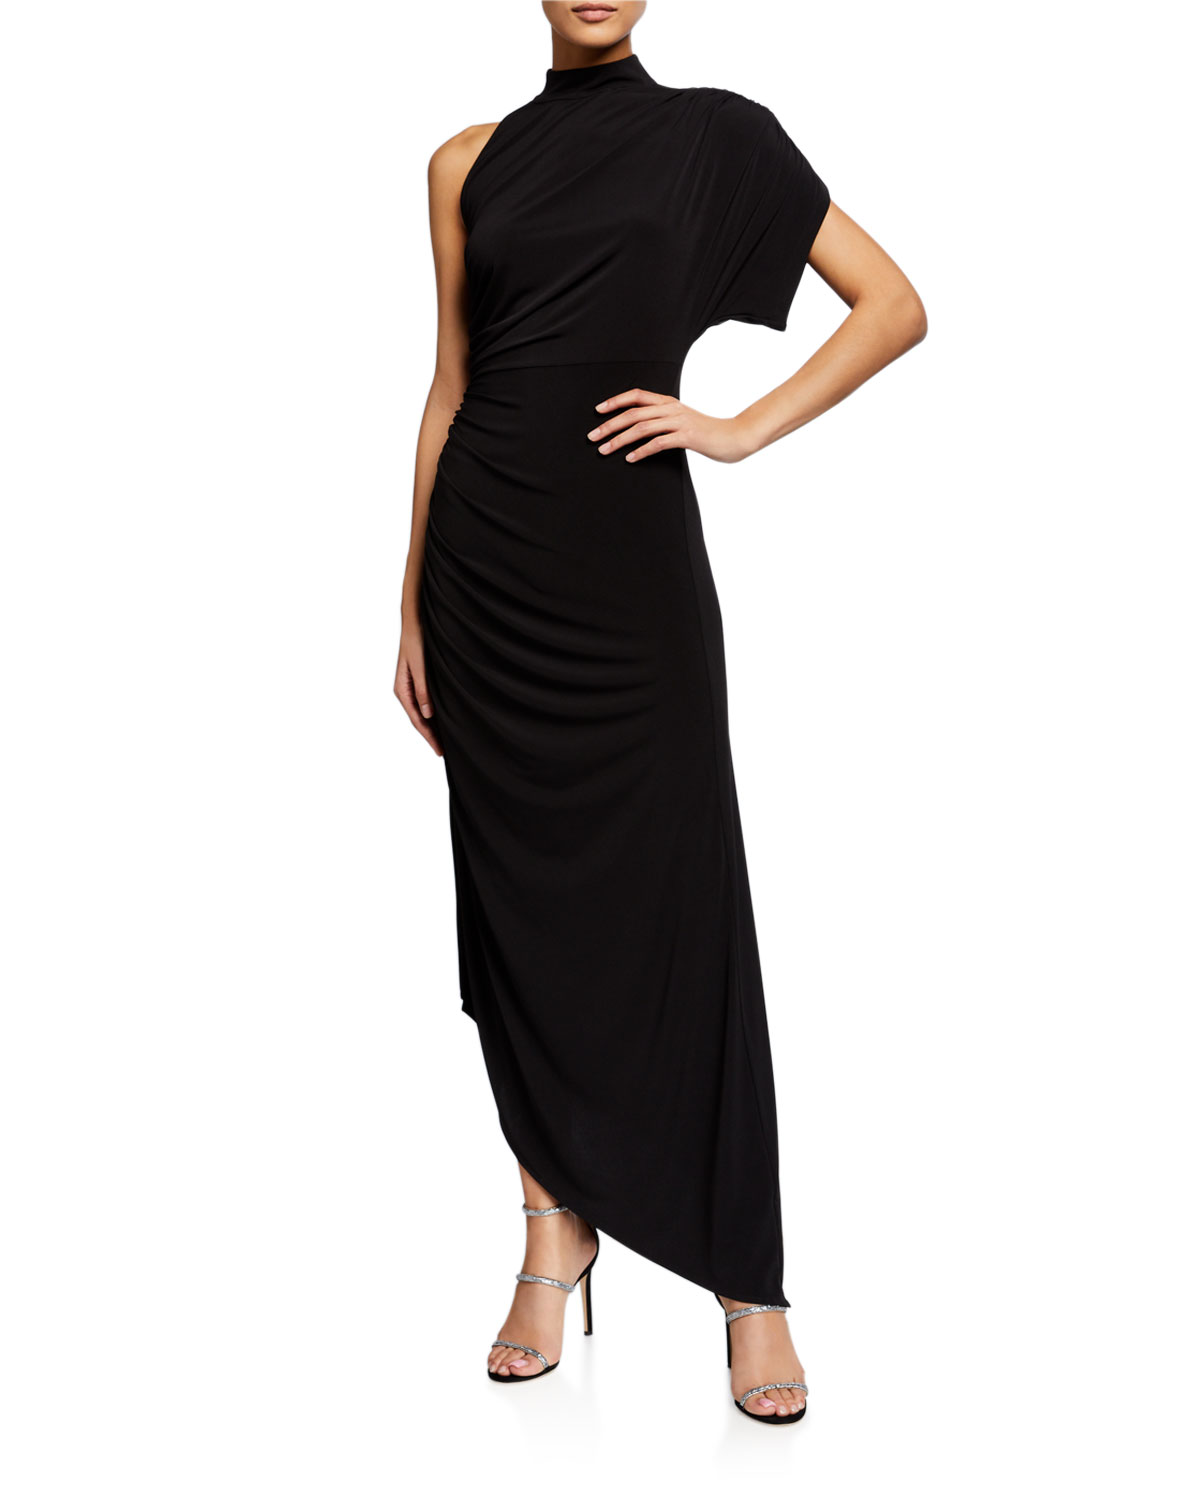 Retroféte MONICA ONE-SHOULDER ASYMMETRIC COCKTAIL DRESS